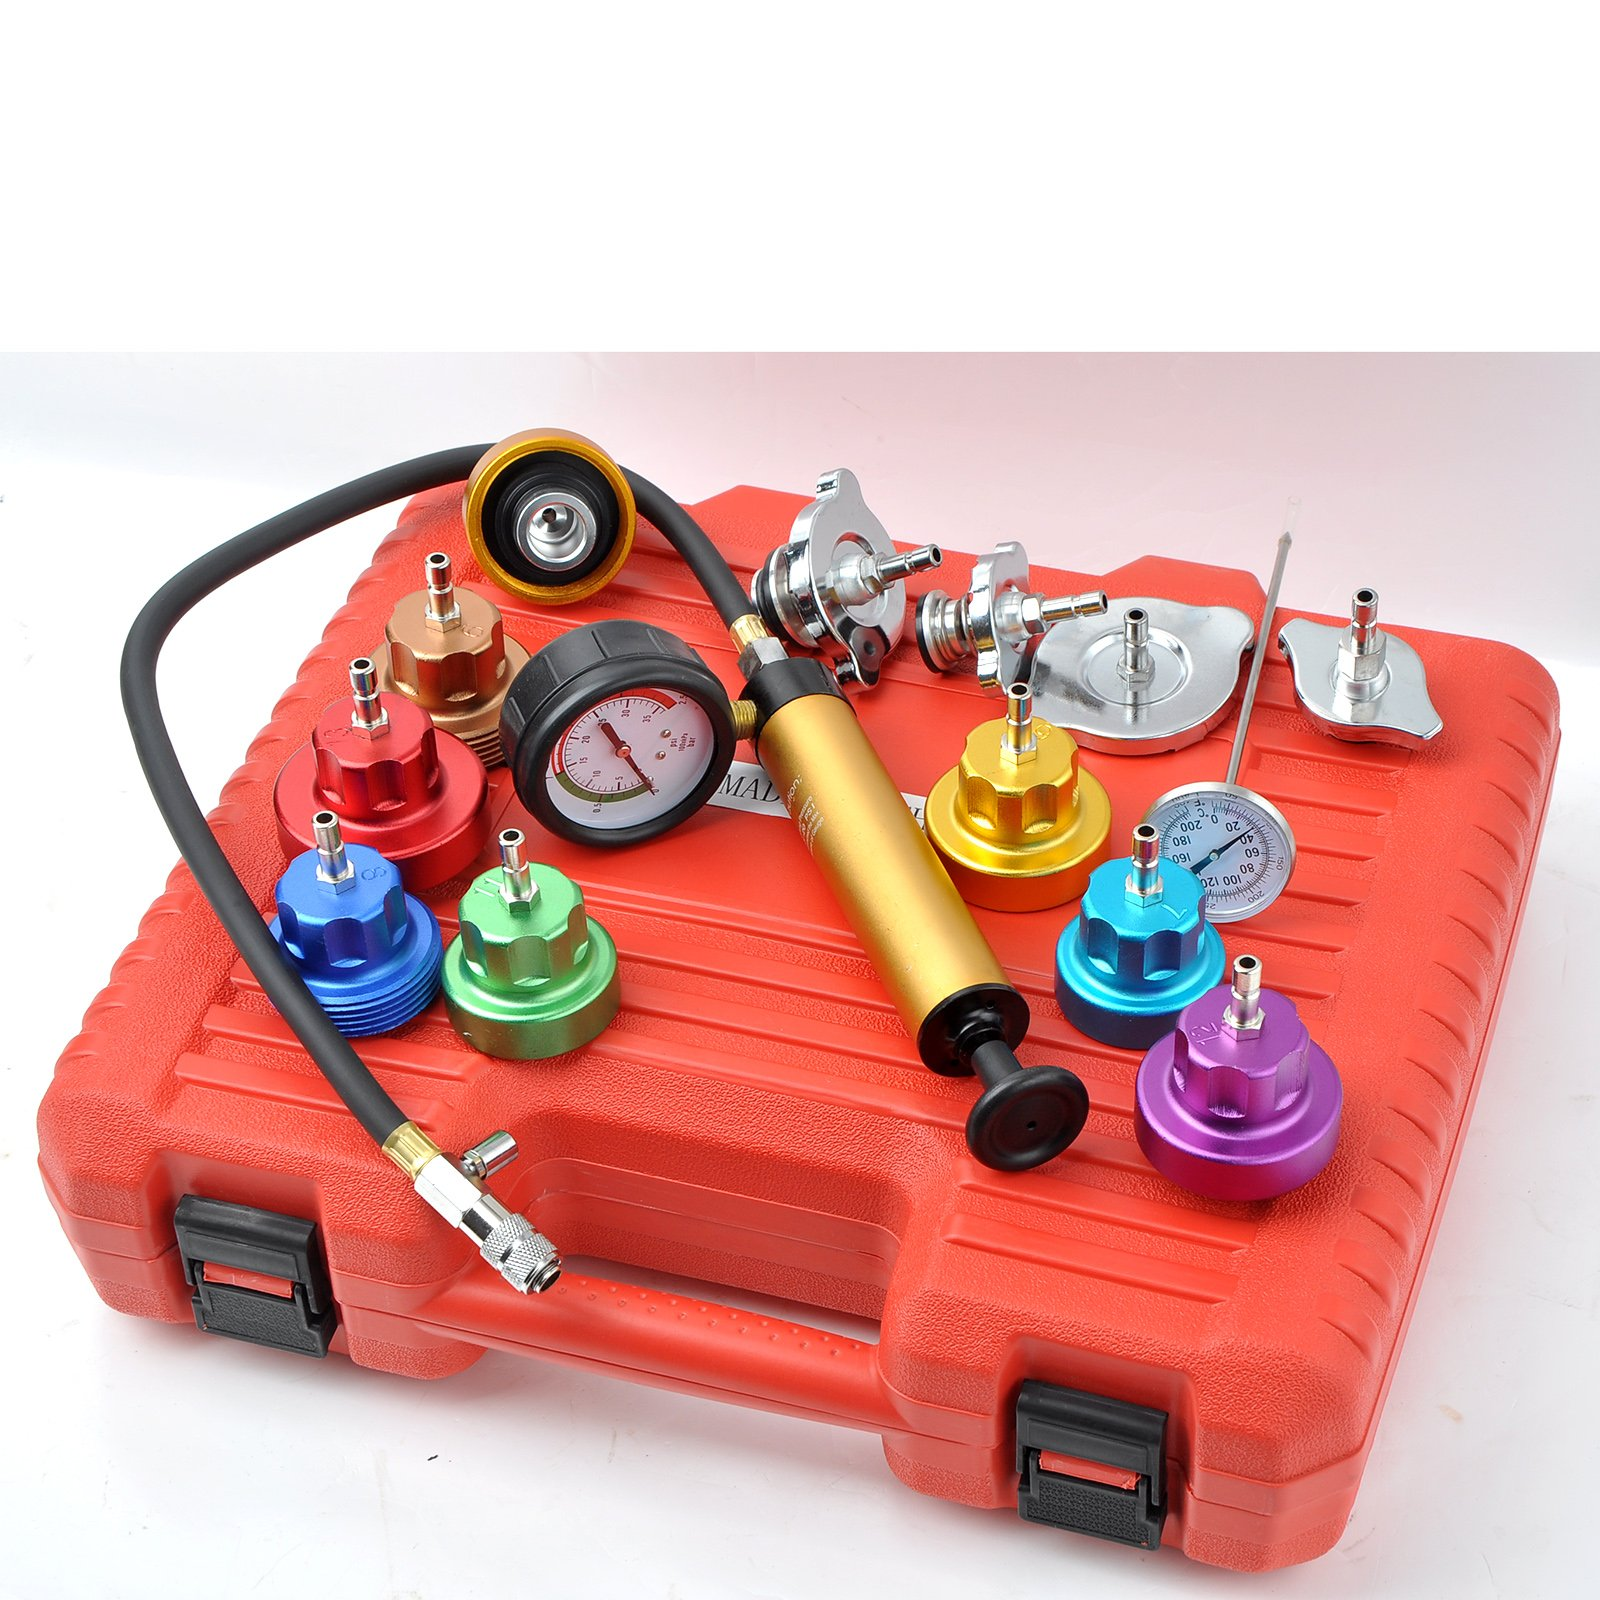 Generic Auto Cooling System Radiator Color Cap Pressure Tester Kit Pump Gauge Adapter HD by WIN.MAX (Image #6)